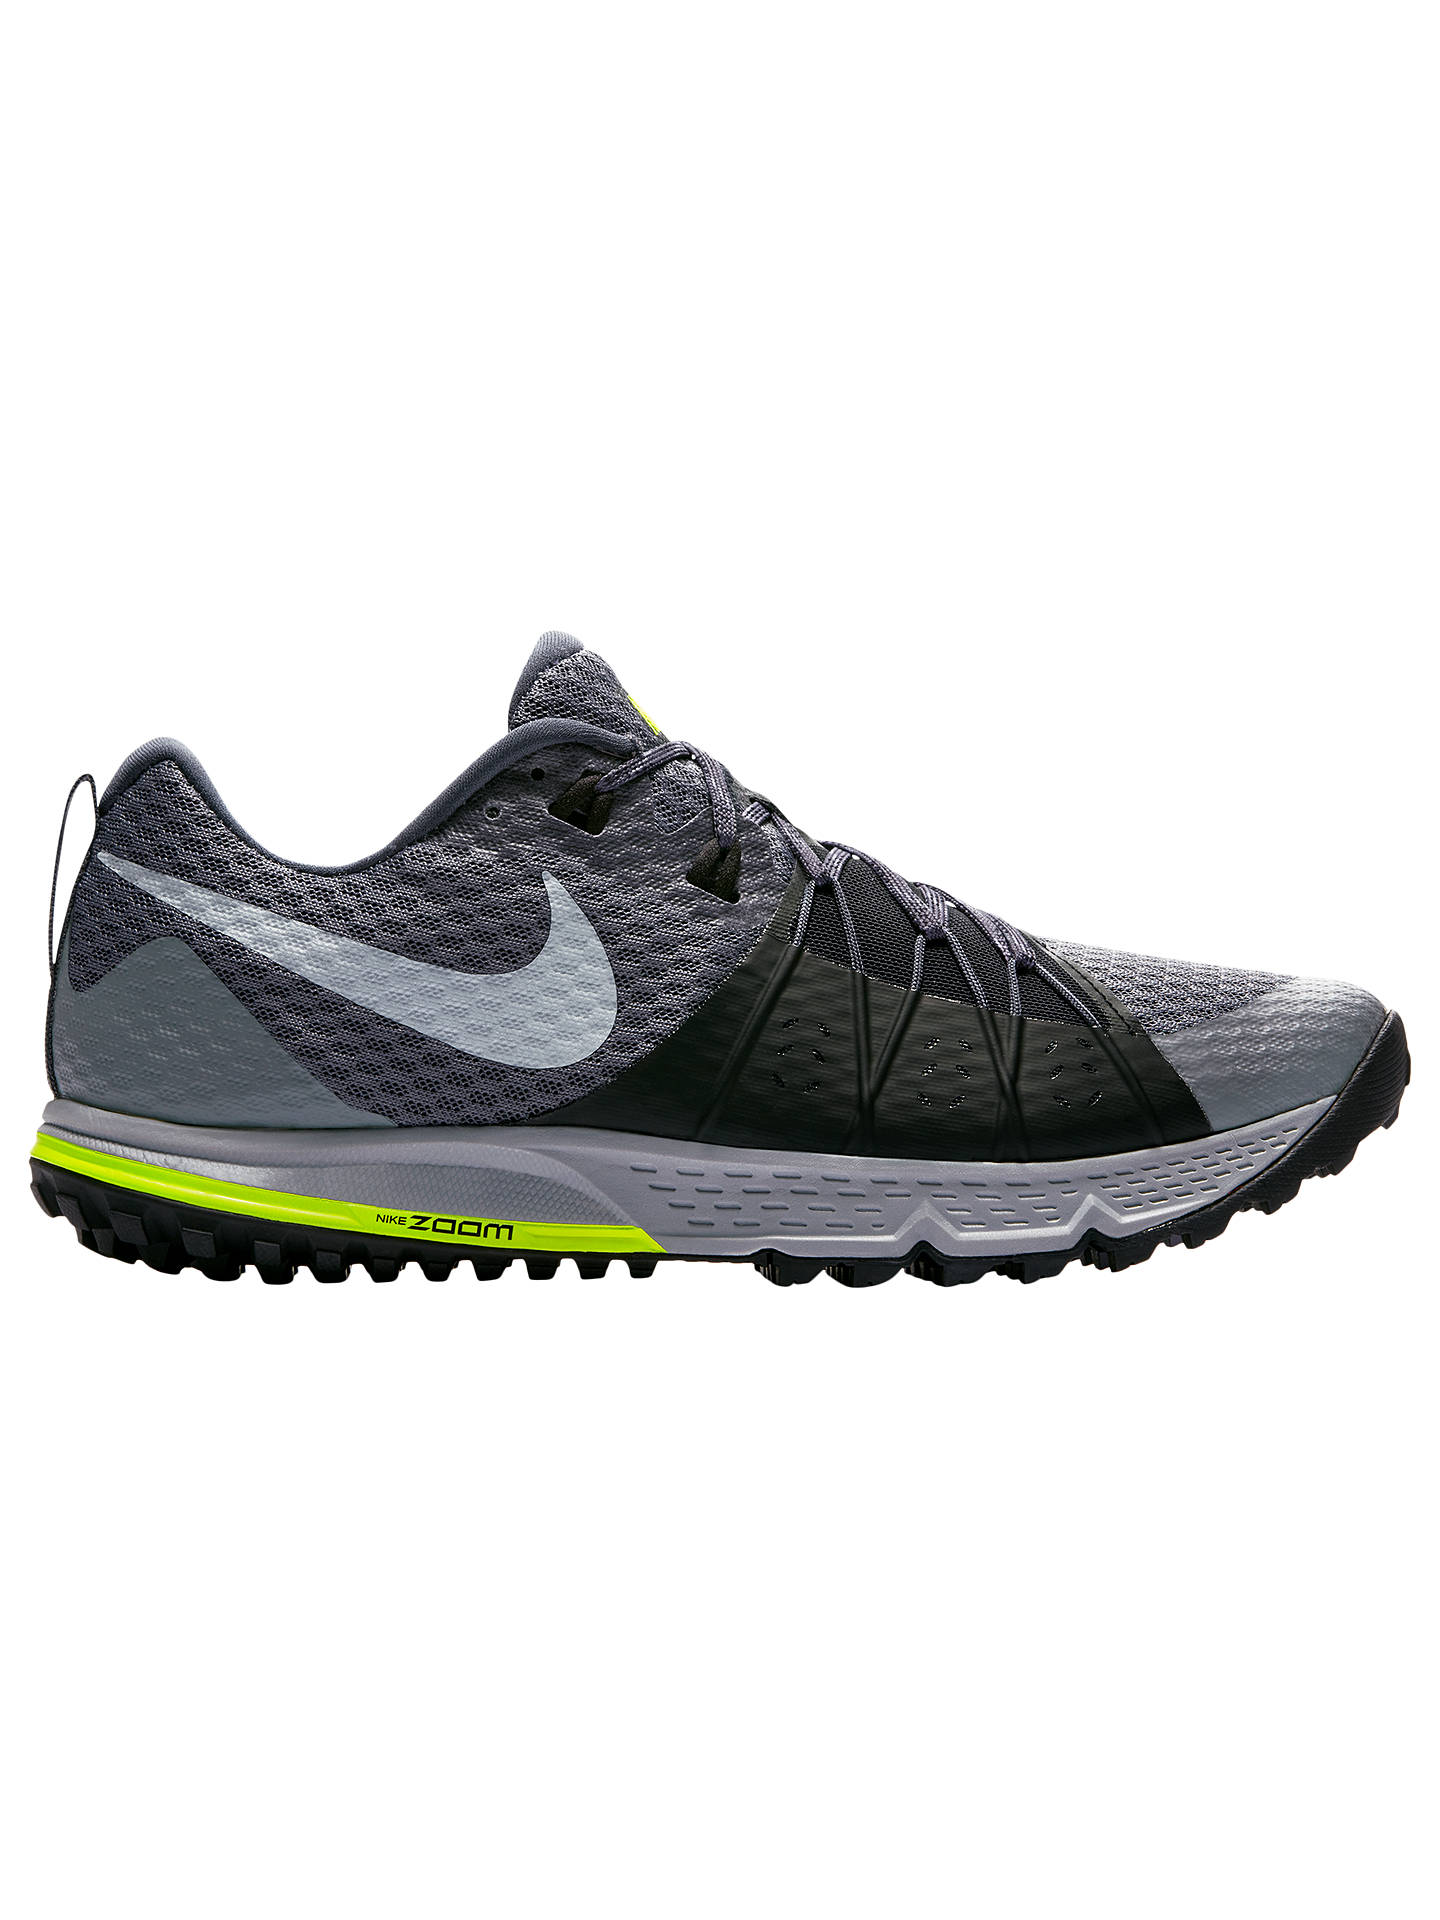 b4c4a5565a Buy Nike Air Zoom Wildhorse 4 Men's Running Shoes, Dark Grey, 7 Online at